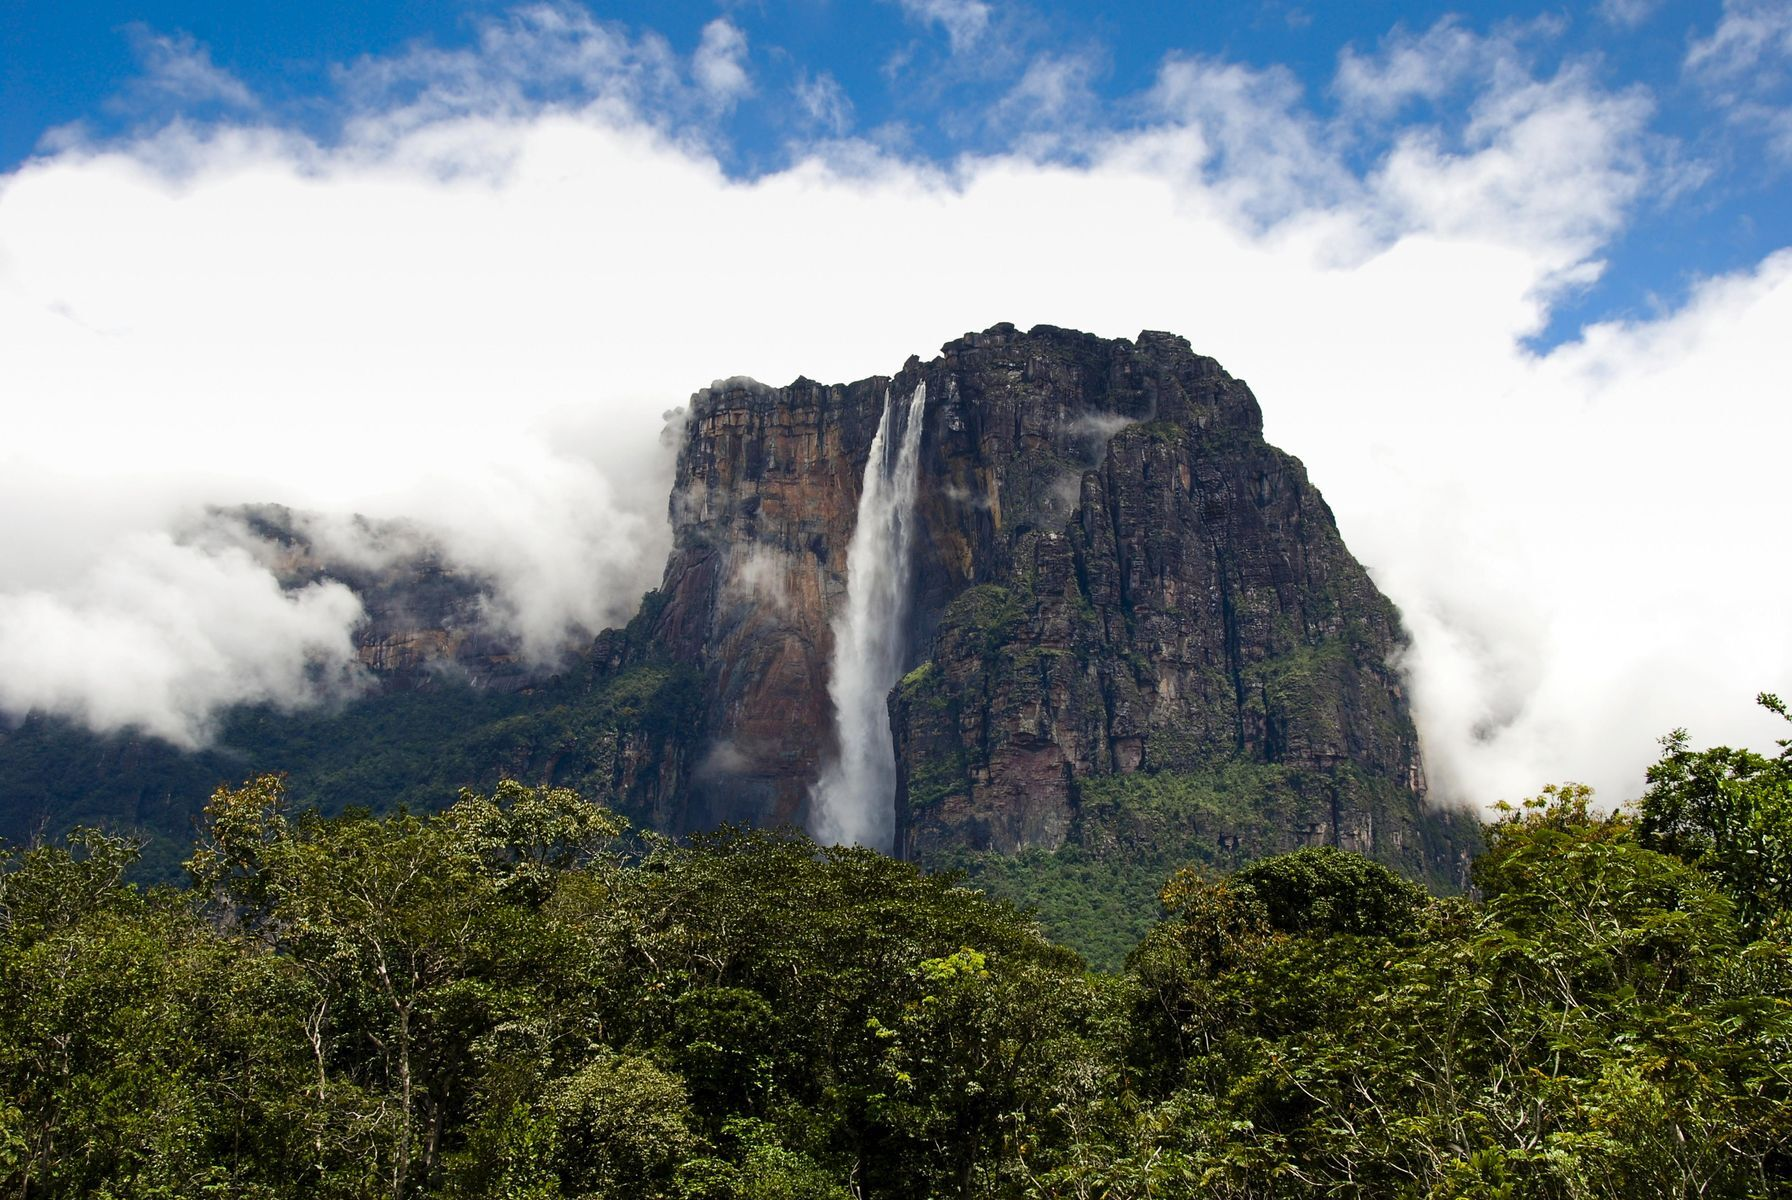 Slide 10 of 31: With geology very similar to that found in Africa, Canaima is covered with flat-topped mountains known as tepui, as well as forests and a lagoon. The lagoon is a popular tourist attraction—tourists can navigate the crystal waters in a canoe. The tallest waterfall in the world, Angel Falls, falls from the summit of one of the tepui mountains called Auyantepui. The waterfall is 979 metres (3,212 feet) high and can be seen from walking routes through the tropical forest.